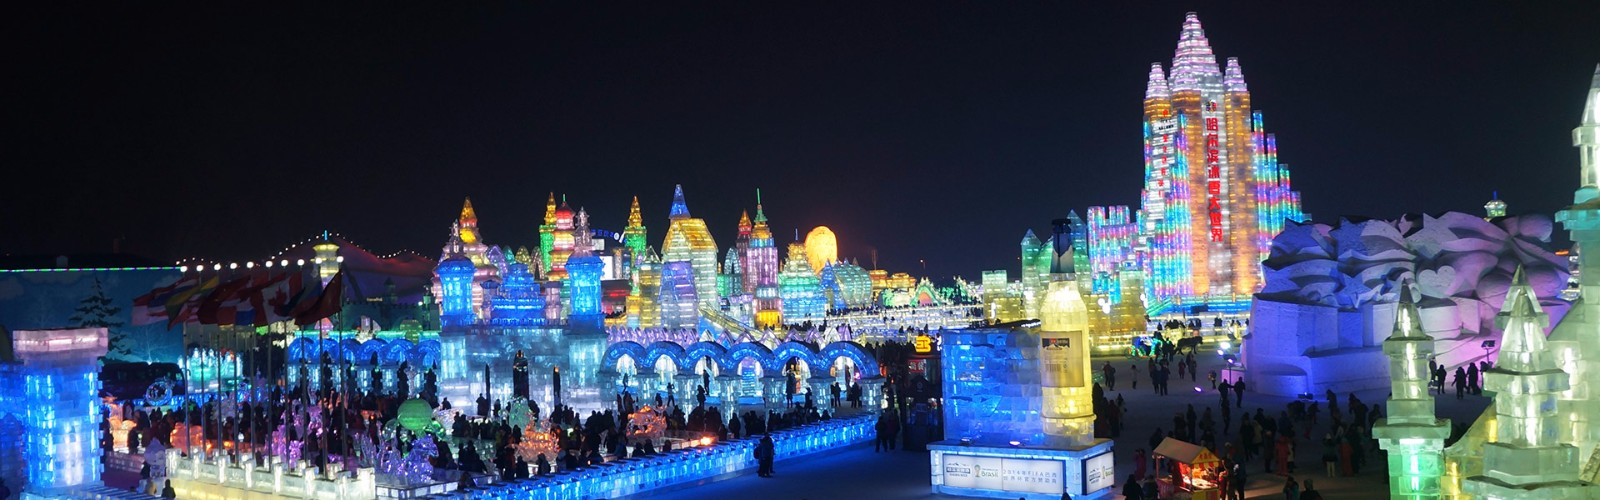 Harbin Ice Festival Short Stay Tour | Wendy Wu Tours